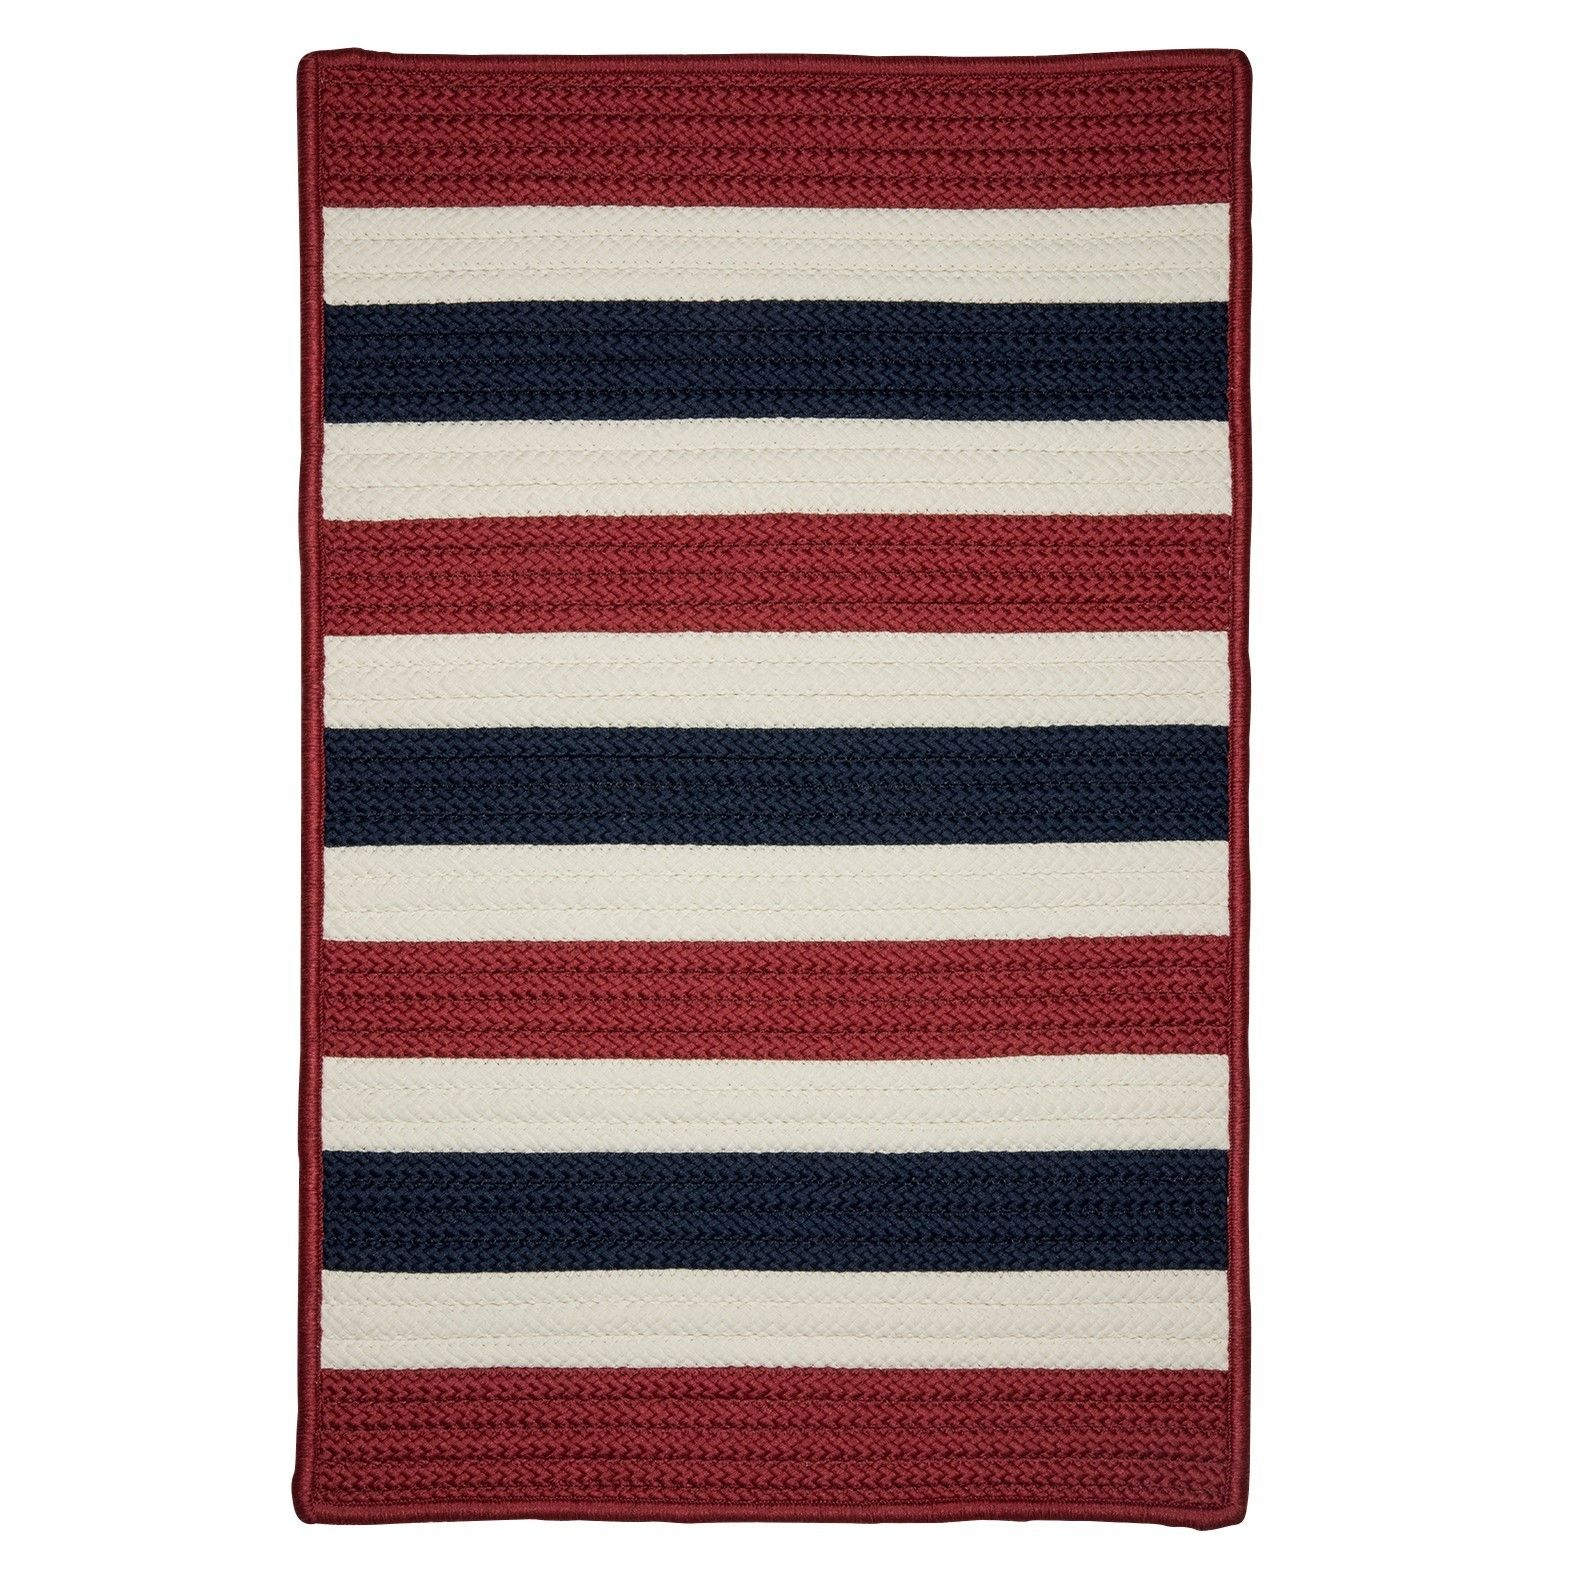 Andover Red Area Rug